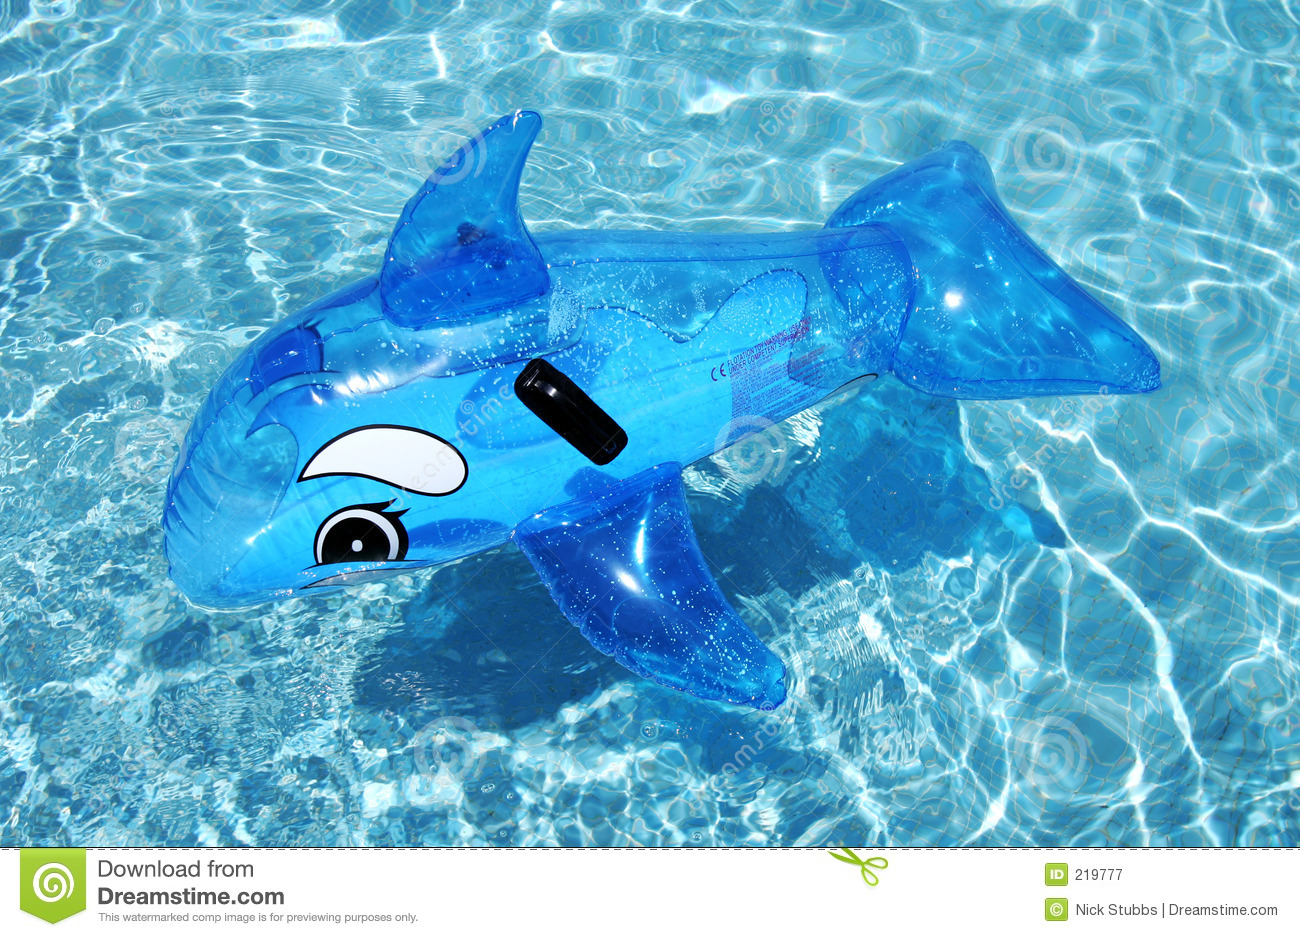 Dauphin gonflable sur la piscine bleue photographie stock for Animaux gonflable piscine